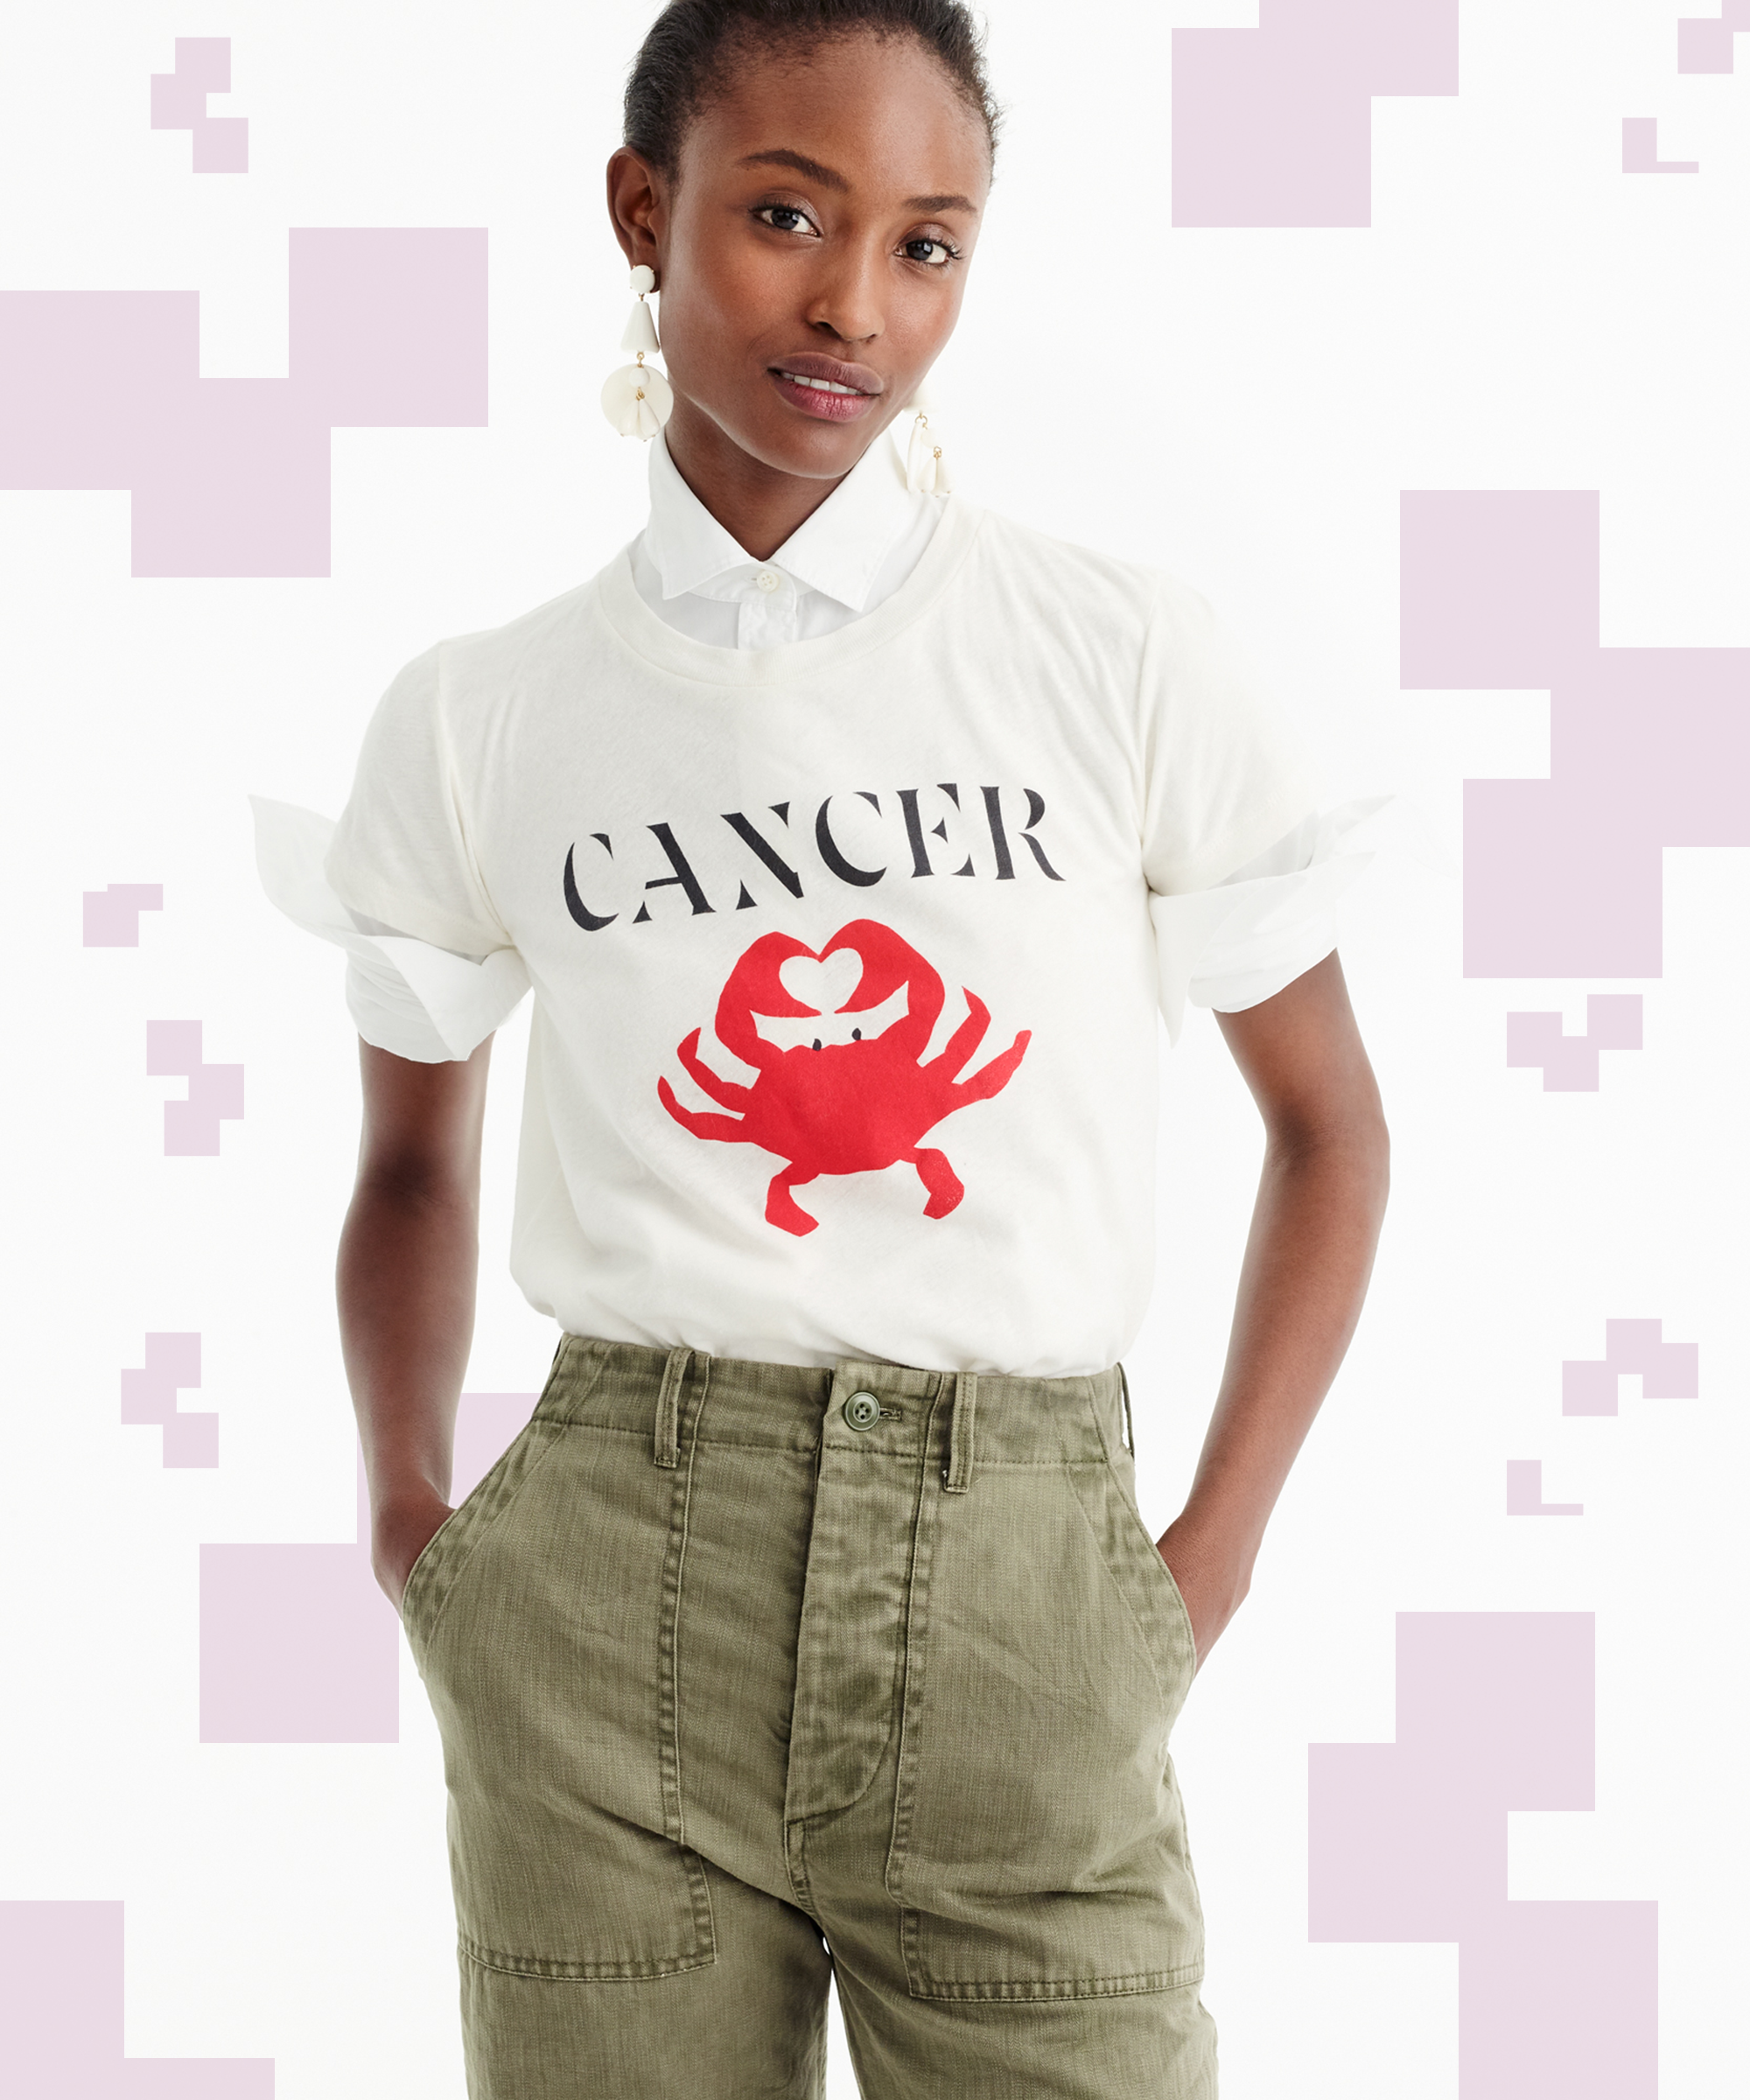 Wear Your Sign On Your Sleeve With J.Crew's New Horoscope Collection